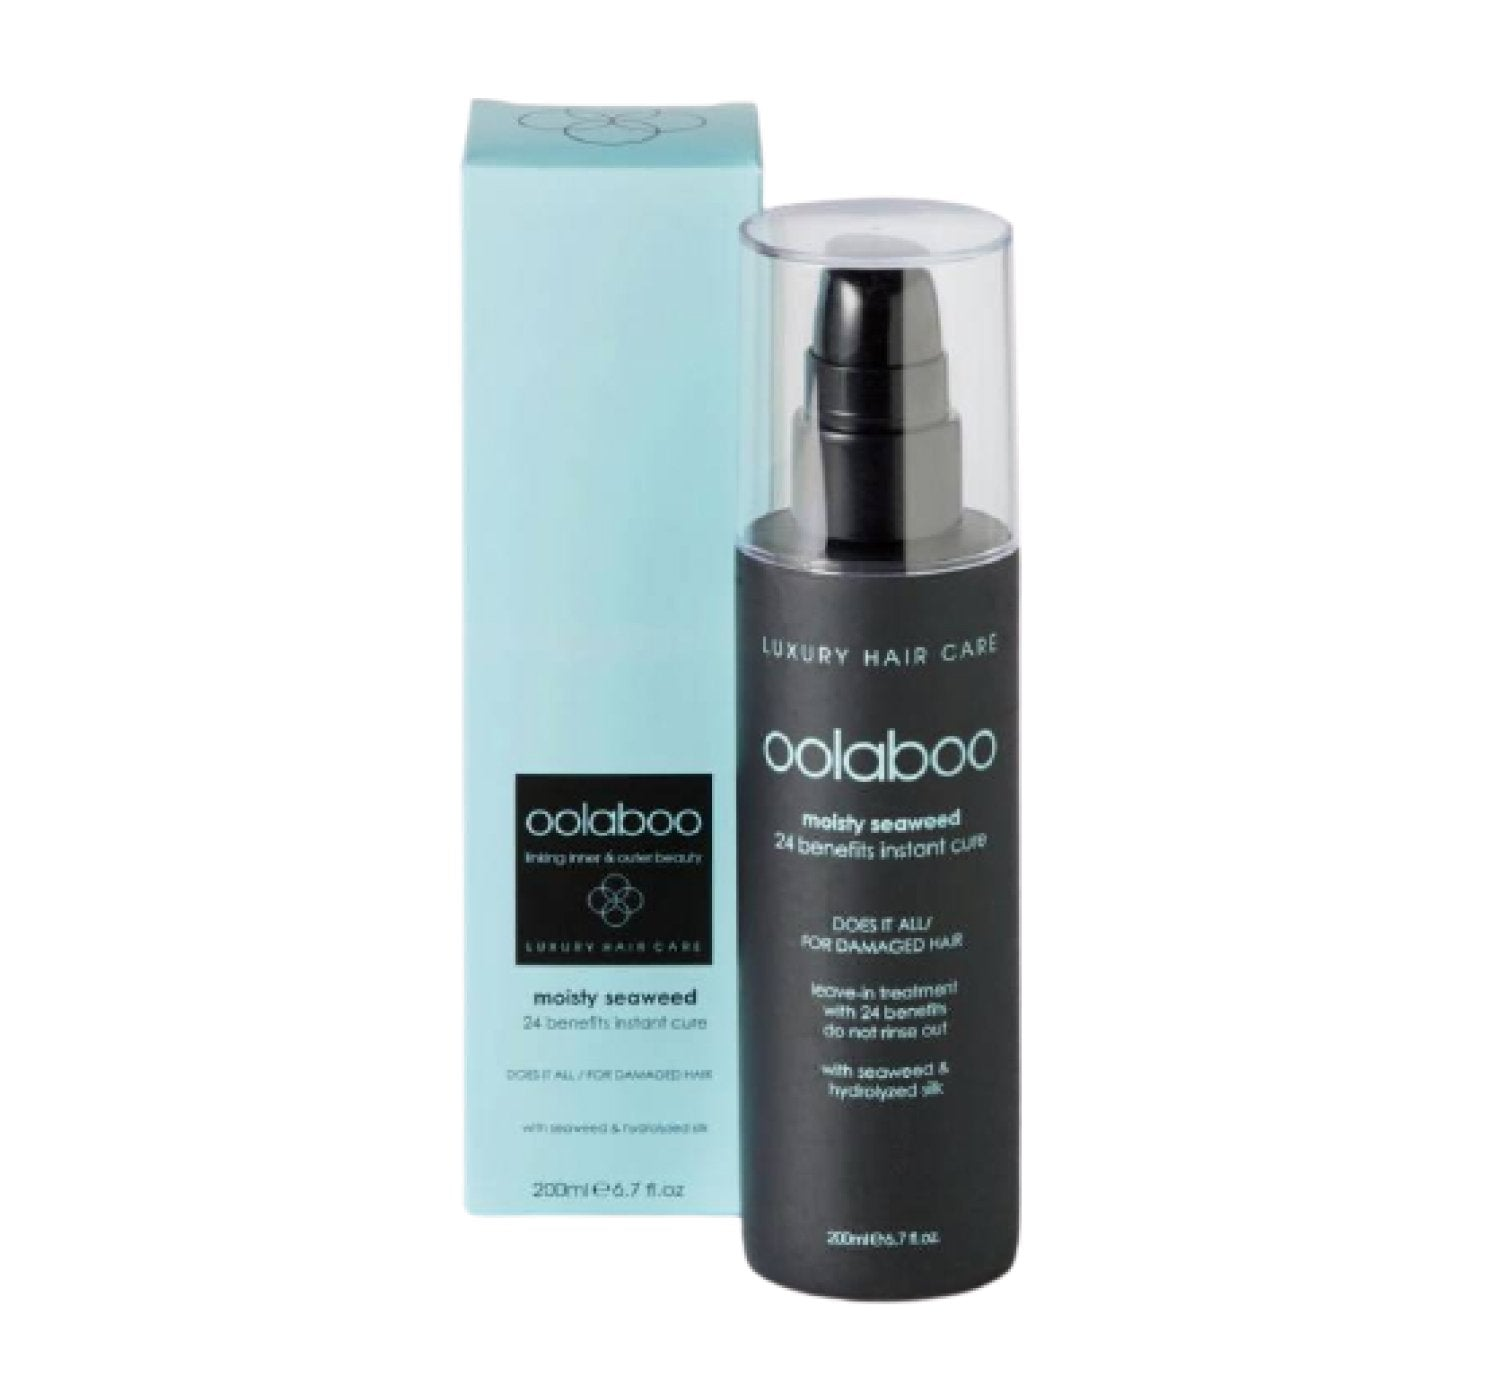 Oolaboo Moisty Seaweed 24 Benefits Instant Cure 200 ml